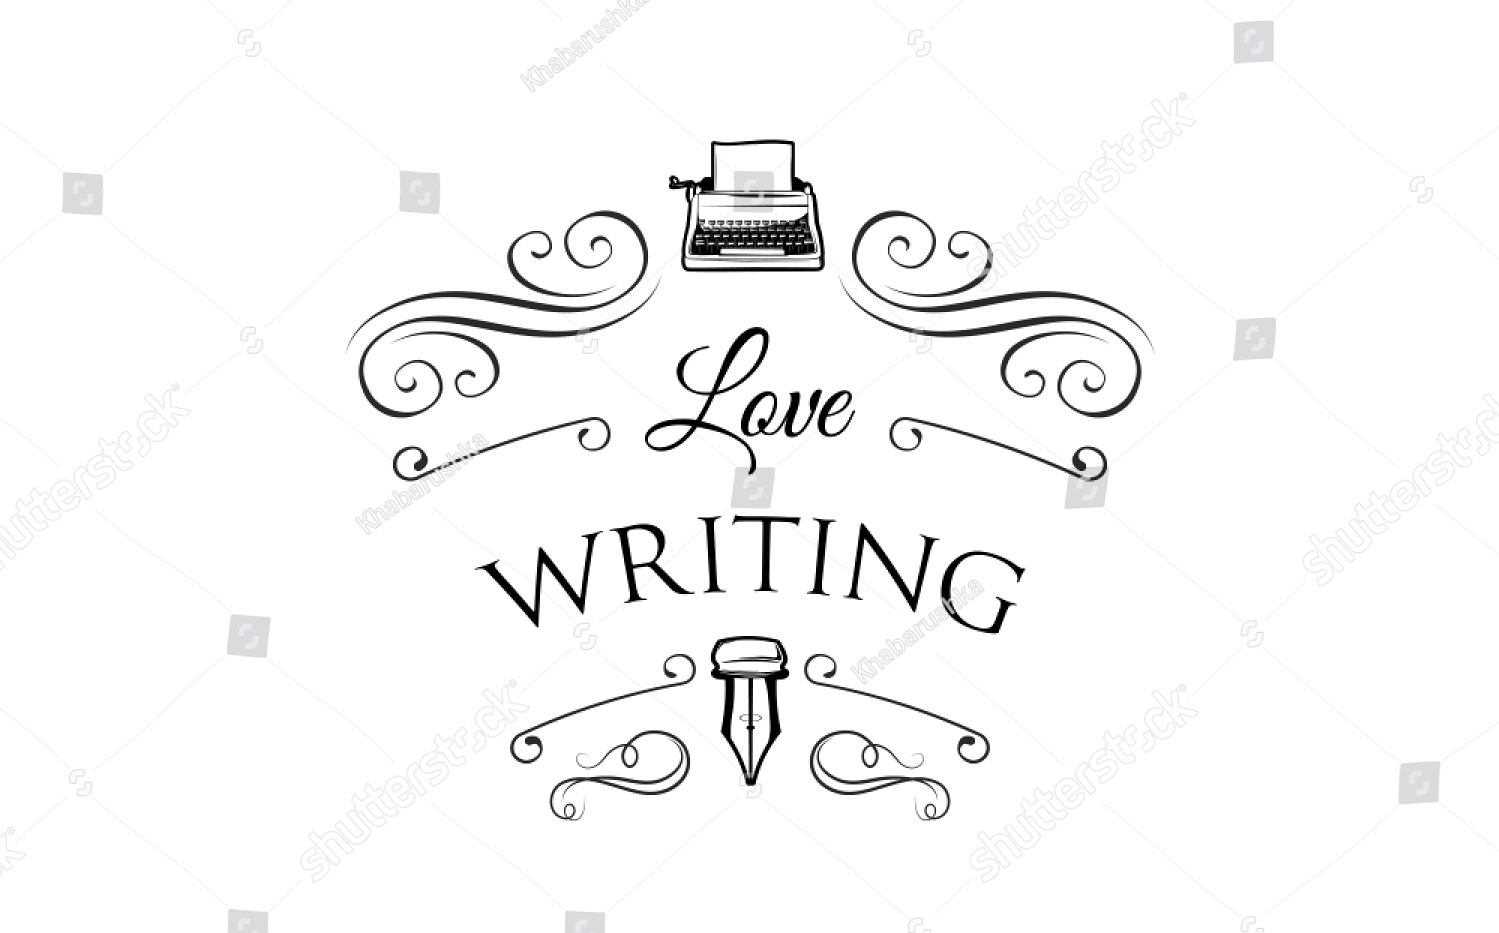 stock-vector-writer-logotype-with-typewriter-feather-and-swirls-logo-vector-illustration-isolated-on-white-1039366123.jpg